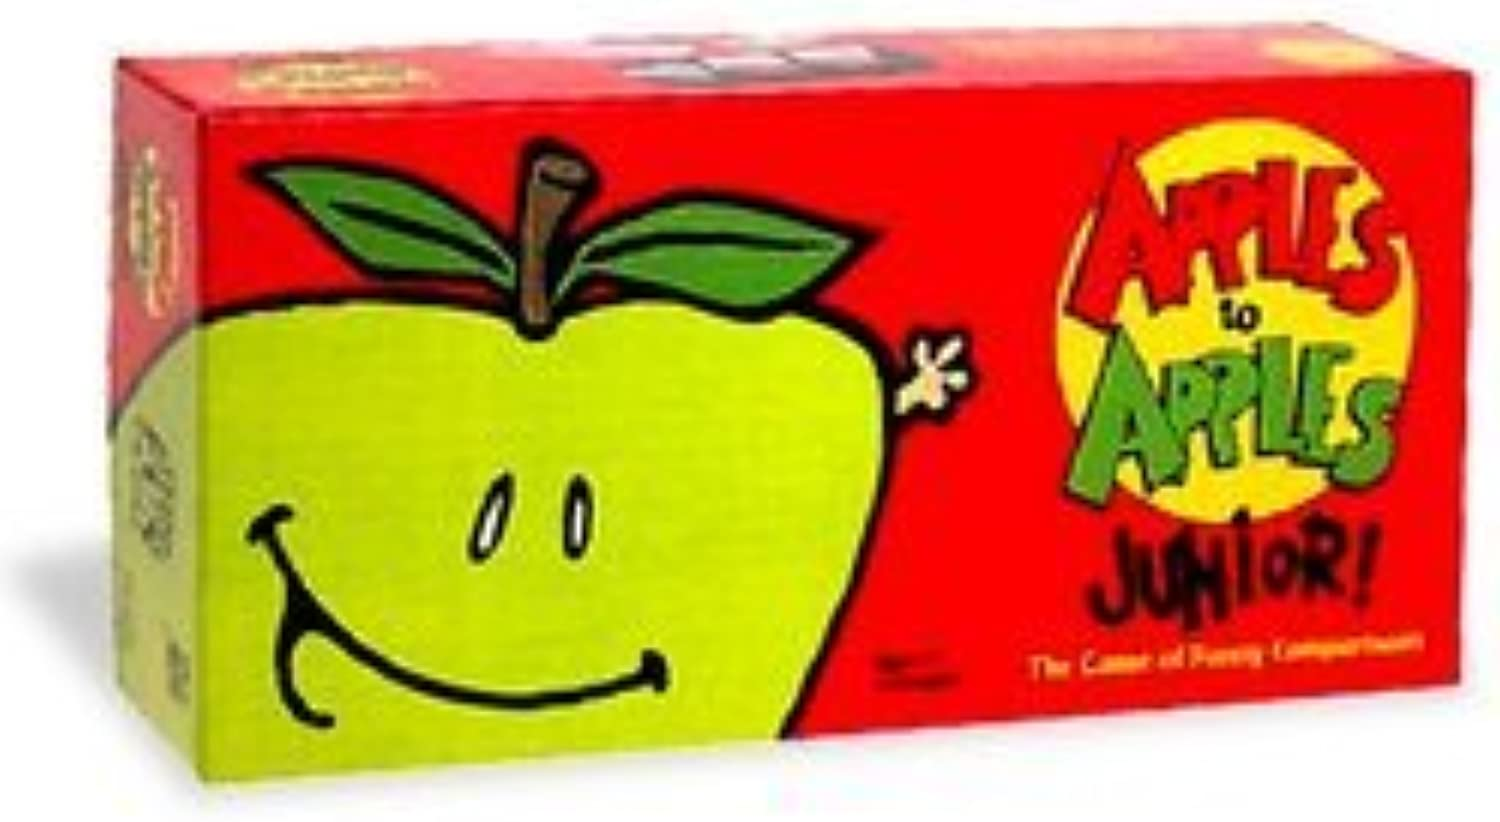 Apples to Apples Junior by Out of the Box